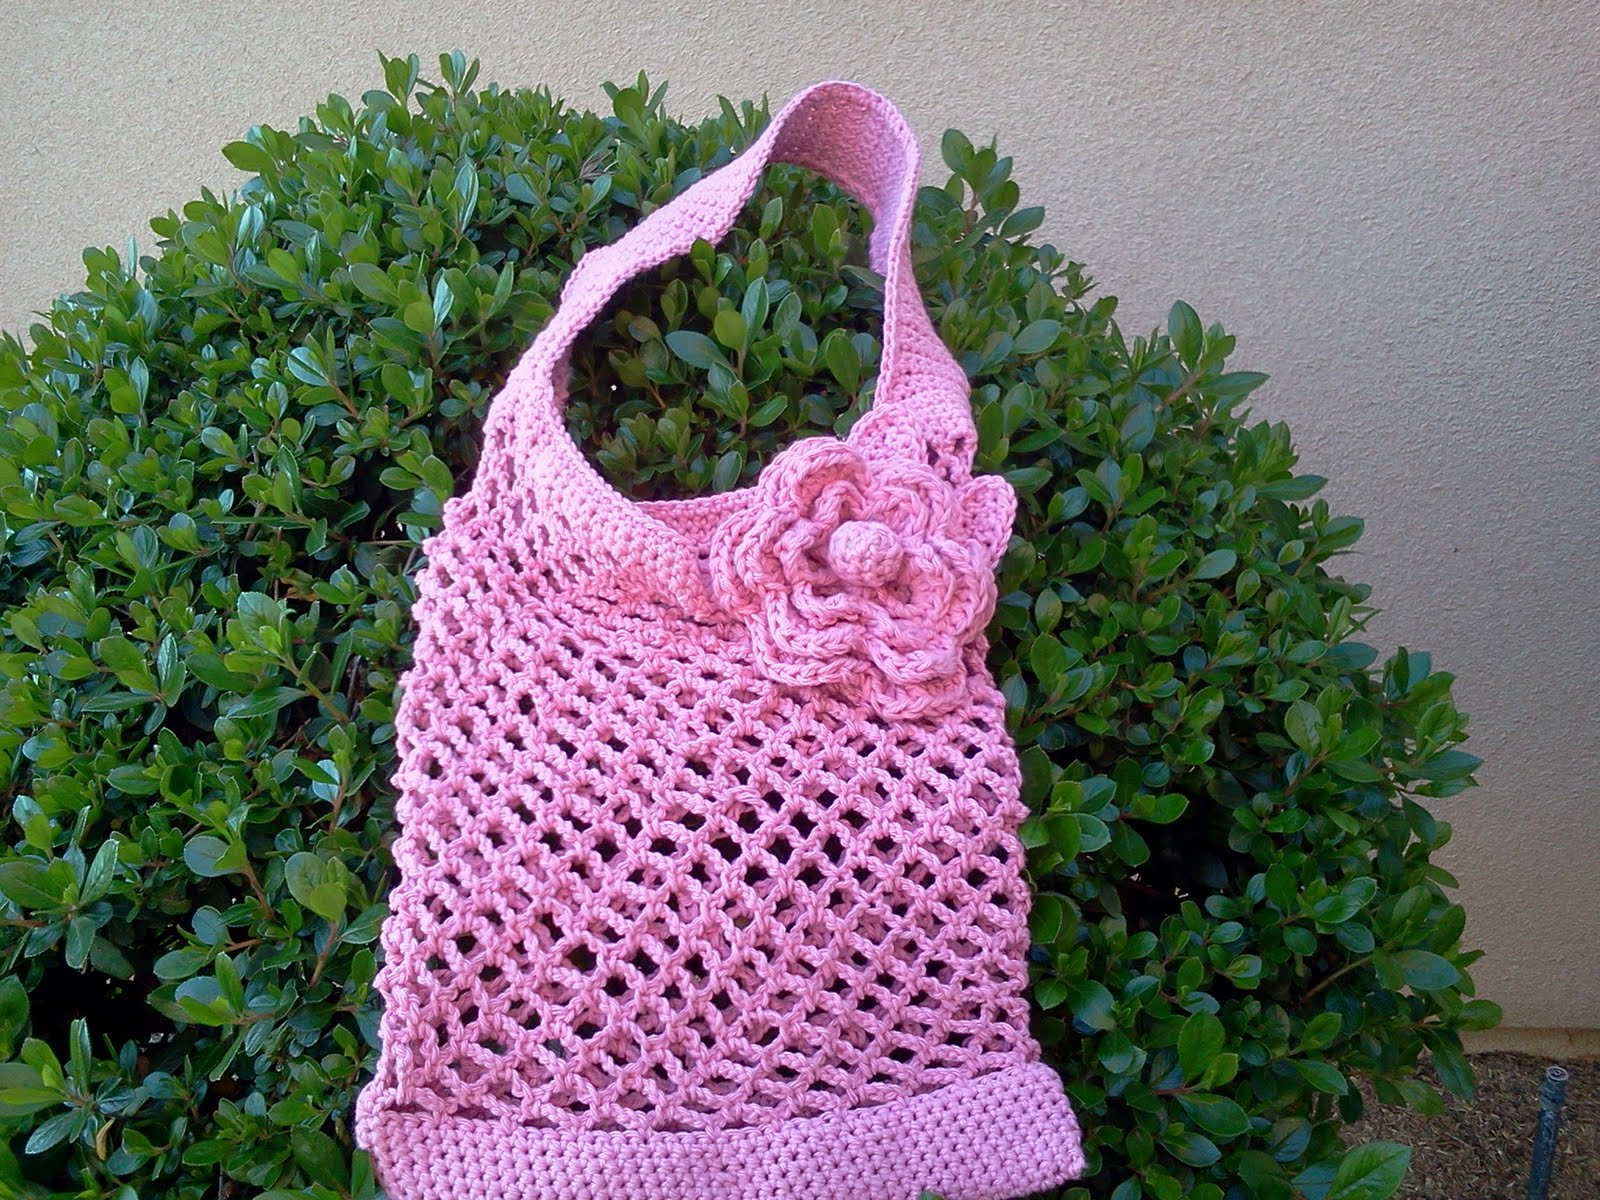 Crochet Mesh Bag Pattern : CROCHET MESH BAG PATTERN - Crochet Club